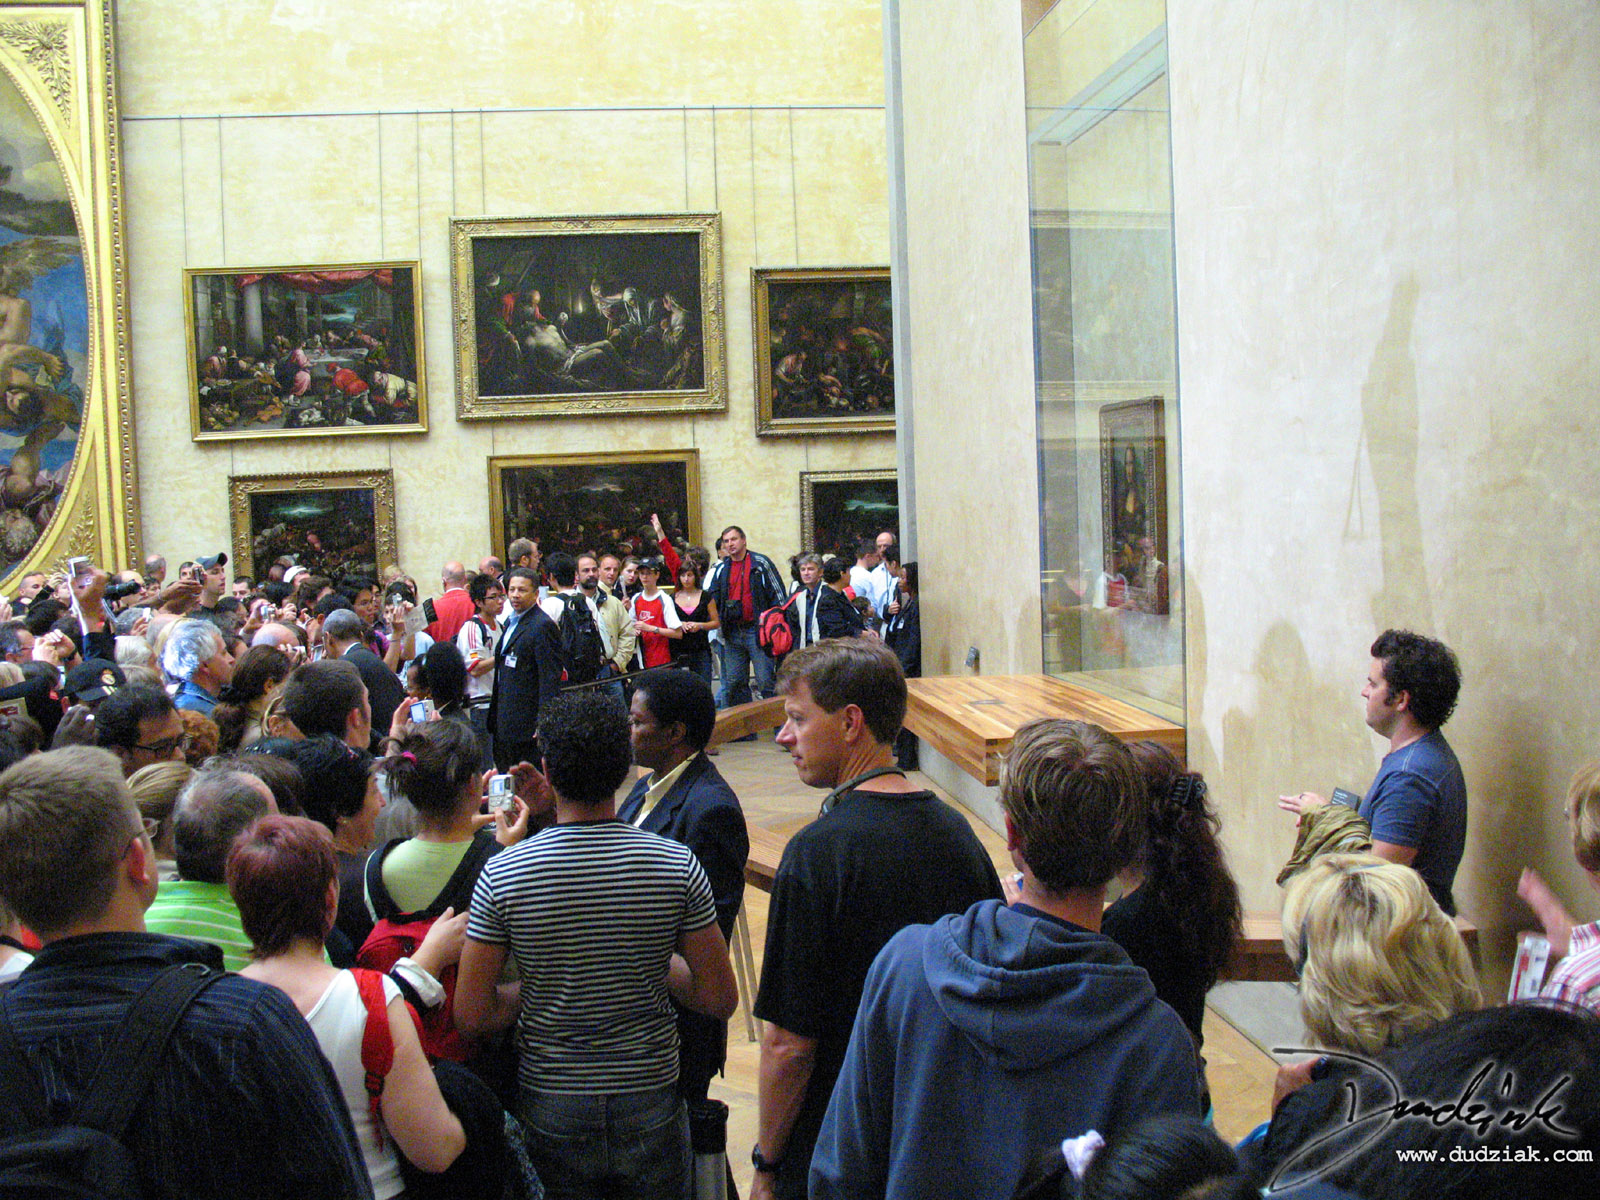 crowd,  Louvre Museum,  France,  Musee du Louvre,  da Vinci,  Paris,  Mona Lisa